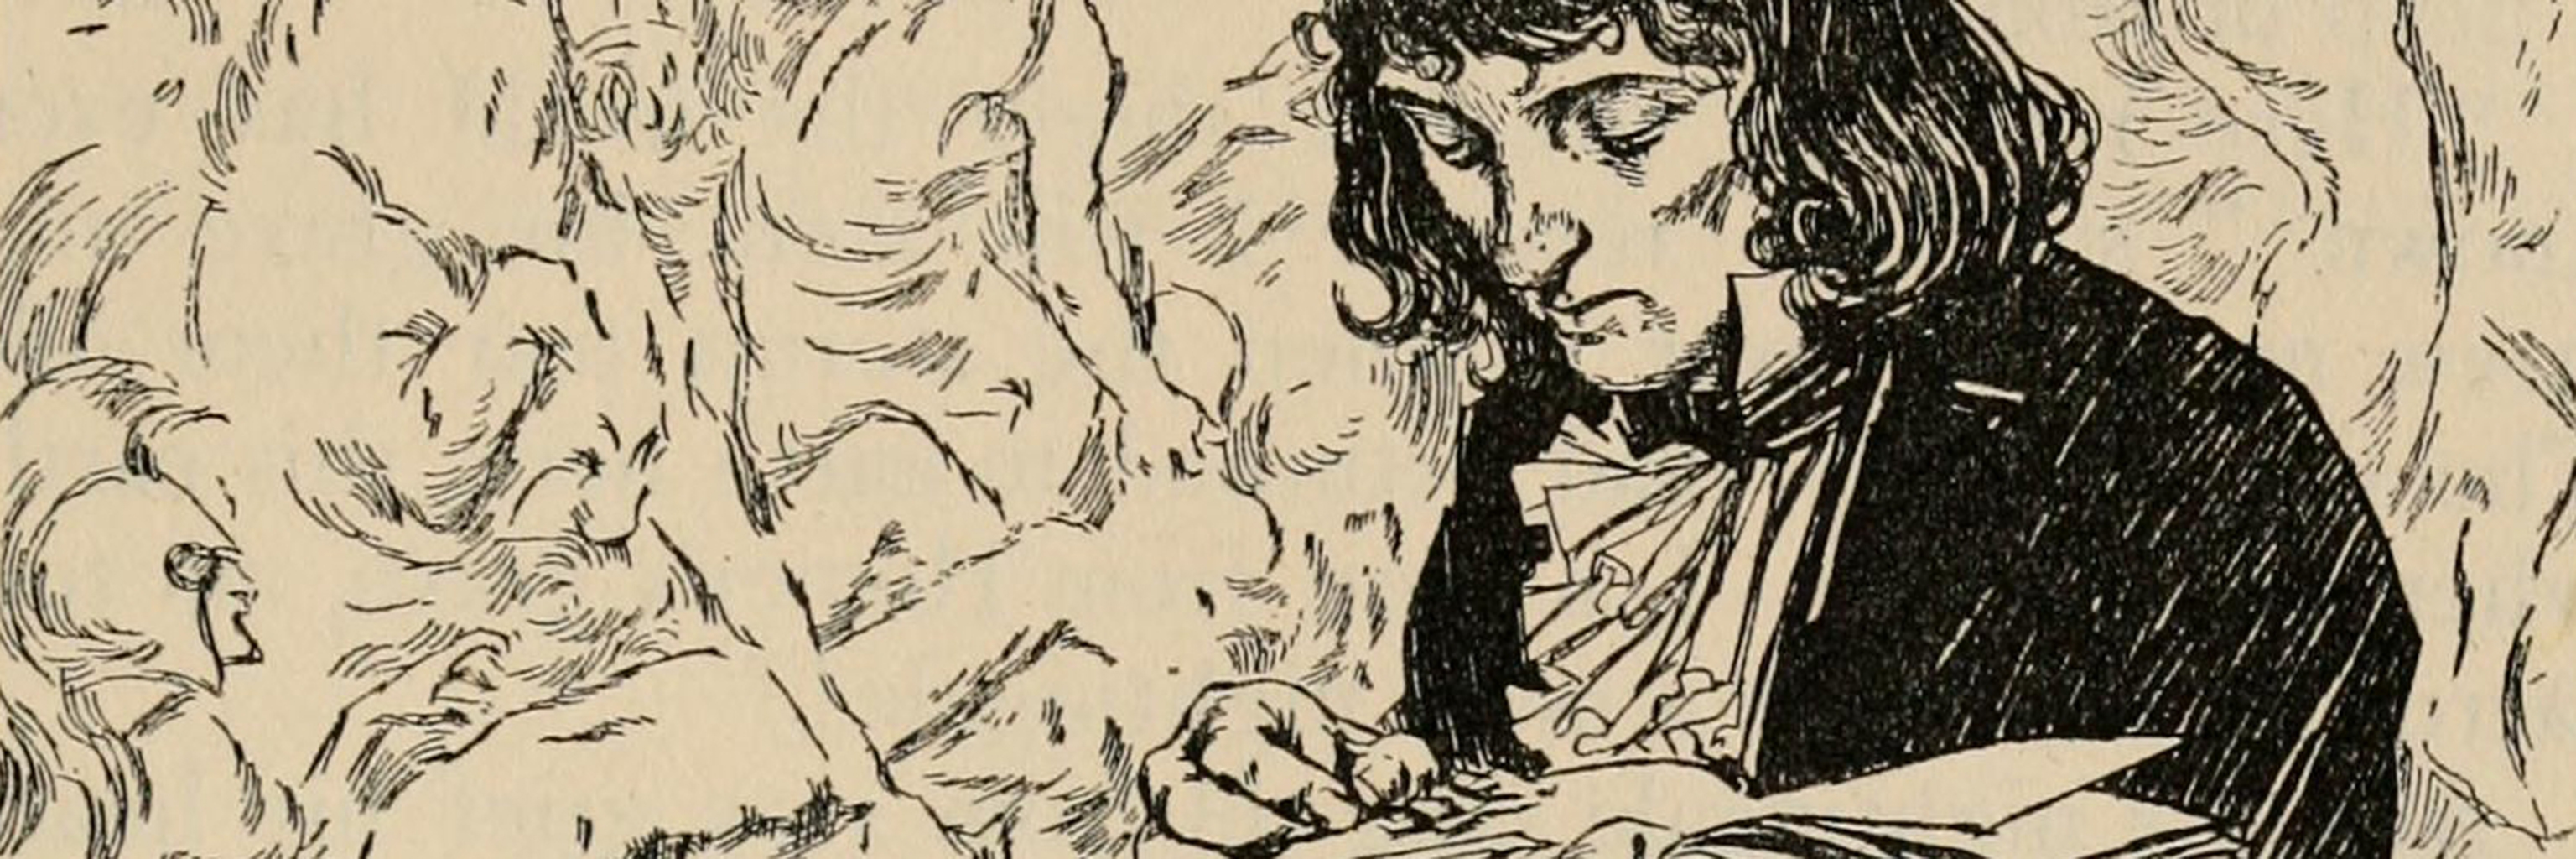 Closeup of an illustration from Hans Christian Anderson book, Fairy tales from Hans Christian Anderson.